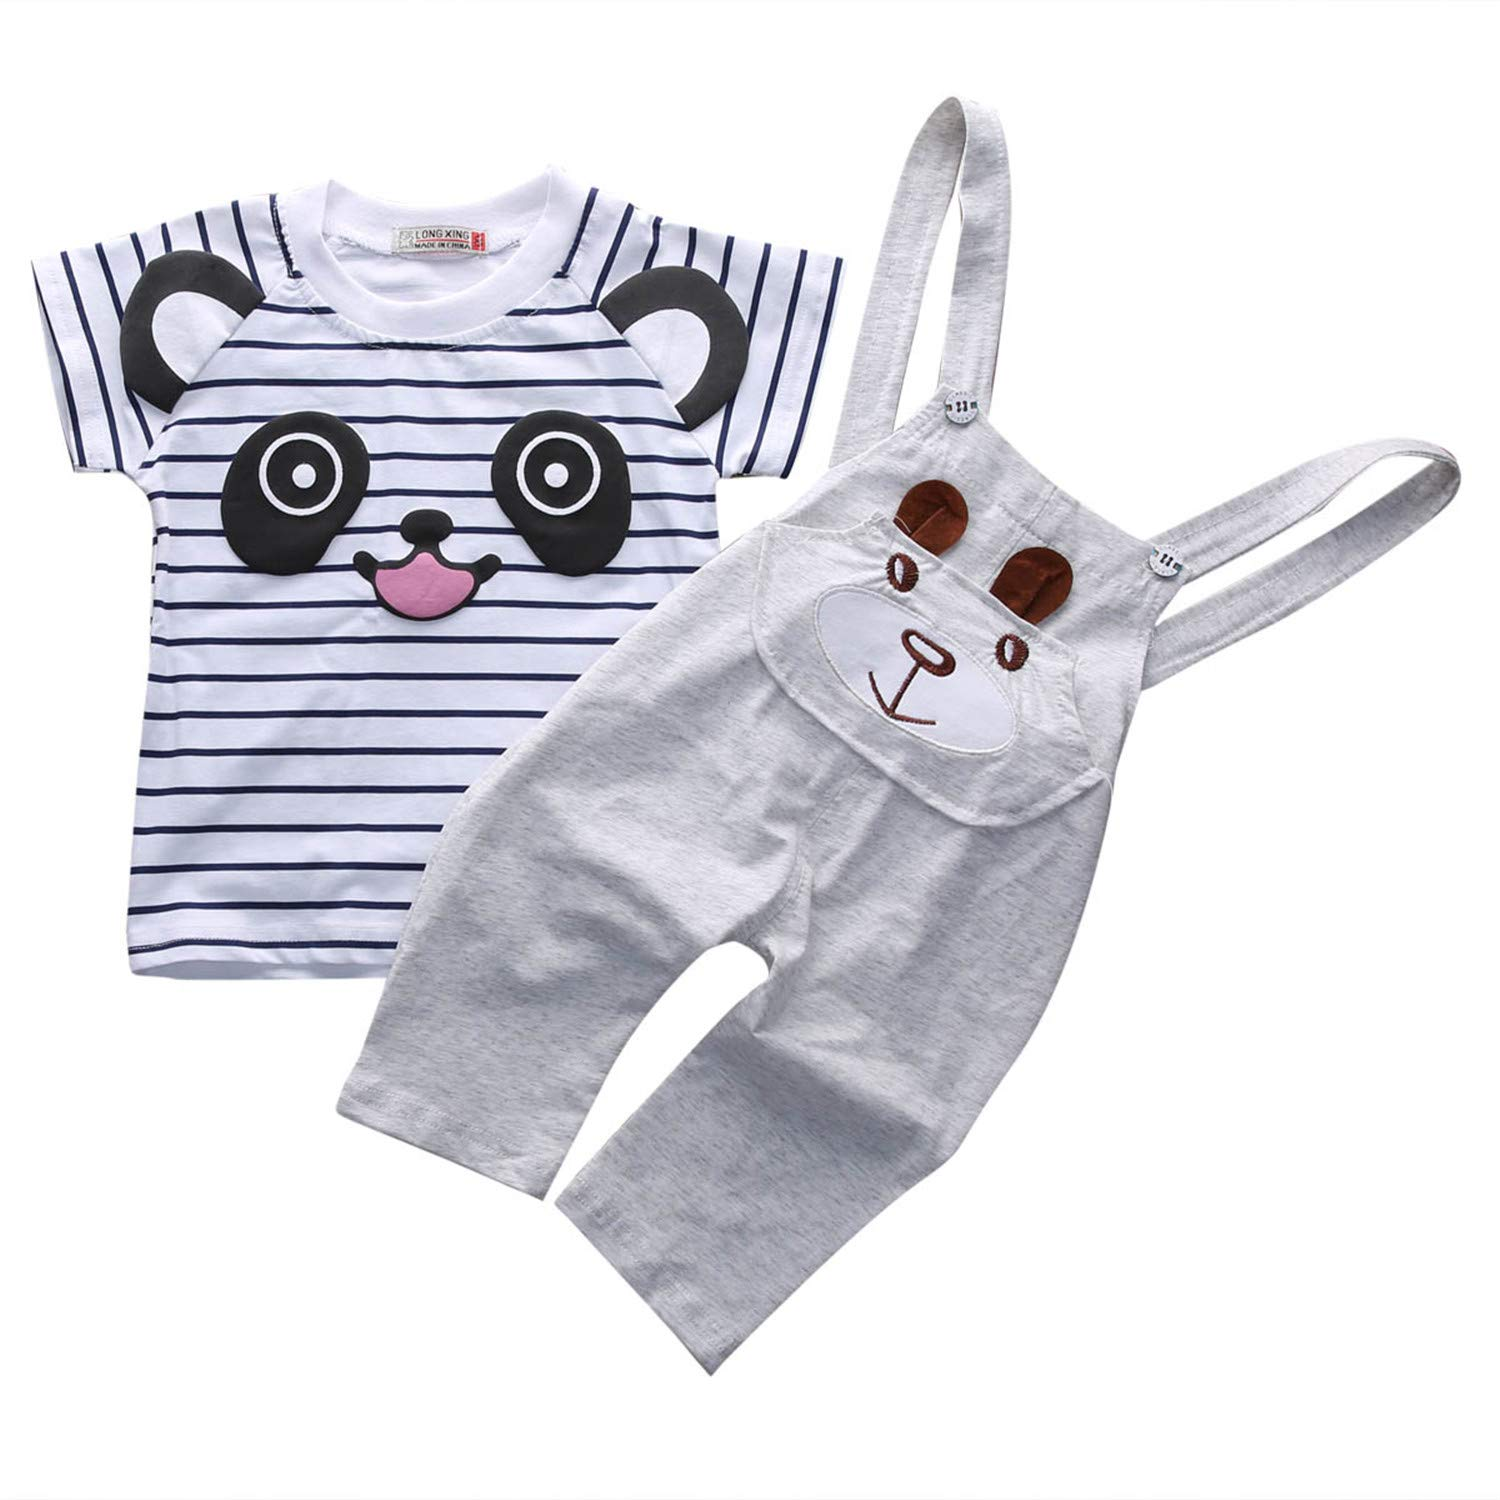 Fashion New 4colors Baby Boy Girls T-Shirt Tops+Pants Overalls Outfits Newborn Kids Cute Clothes Set